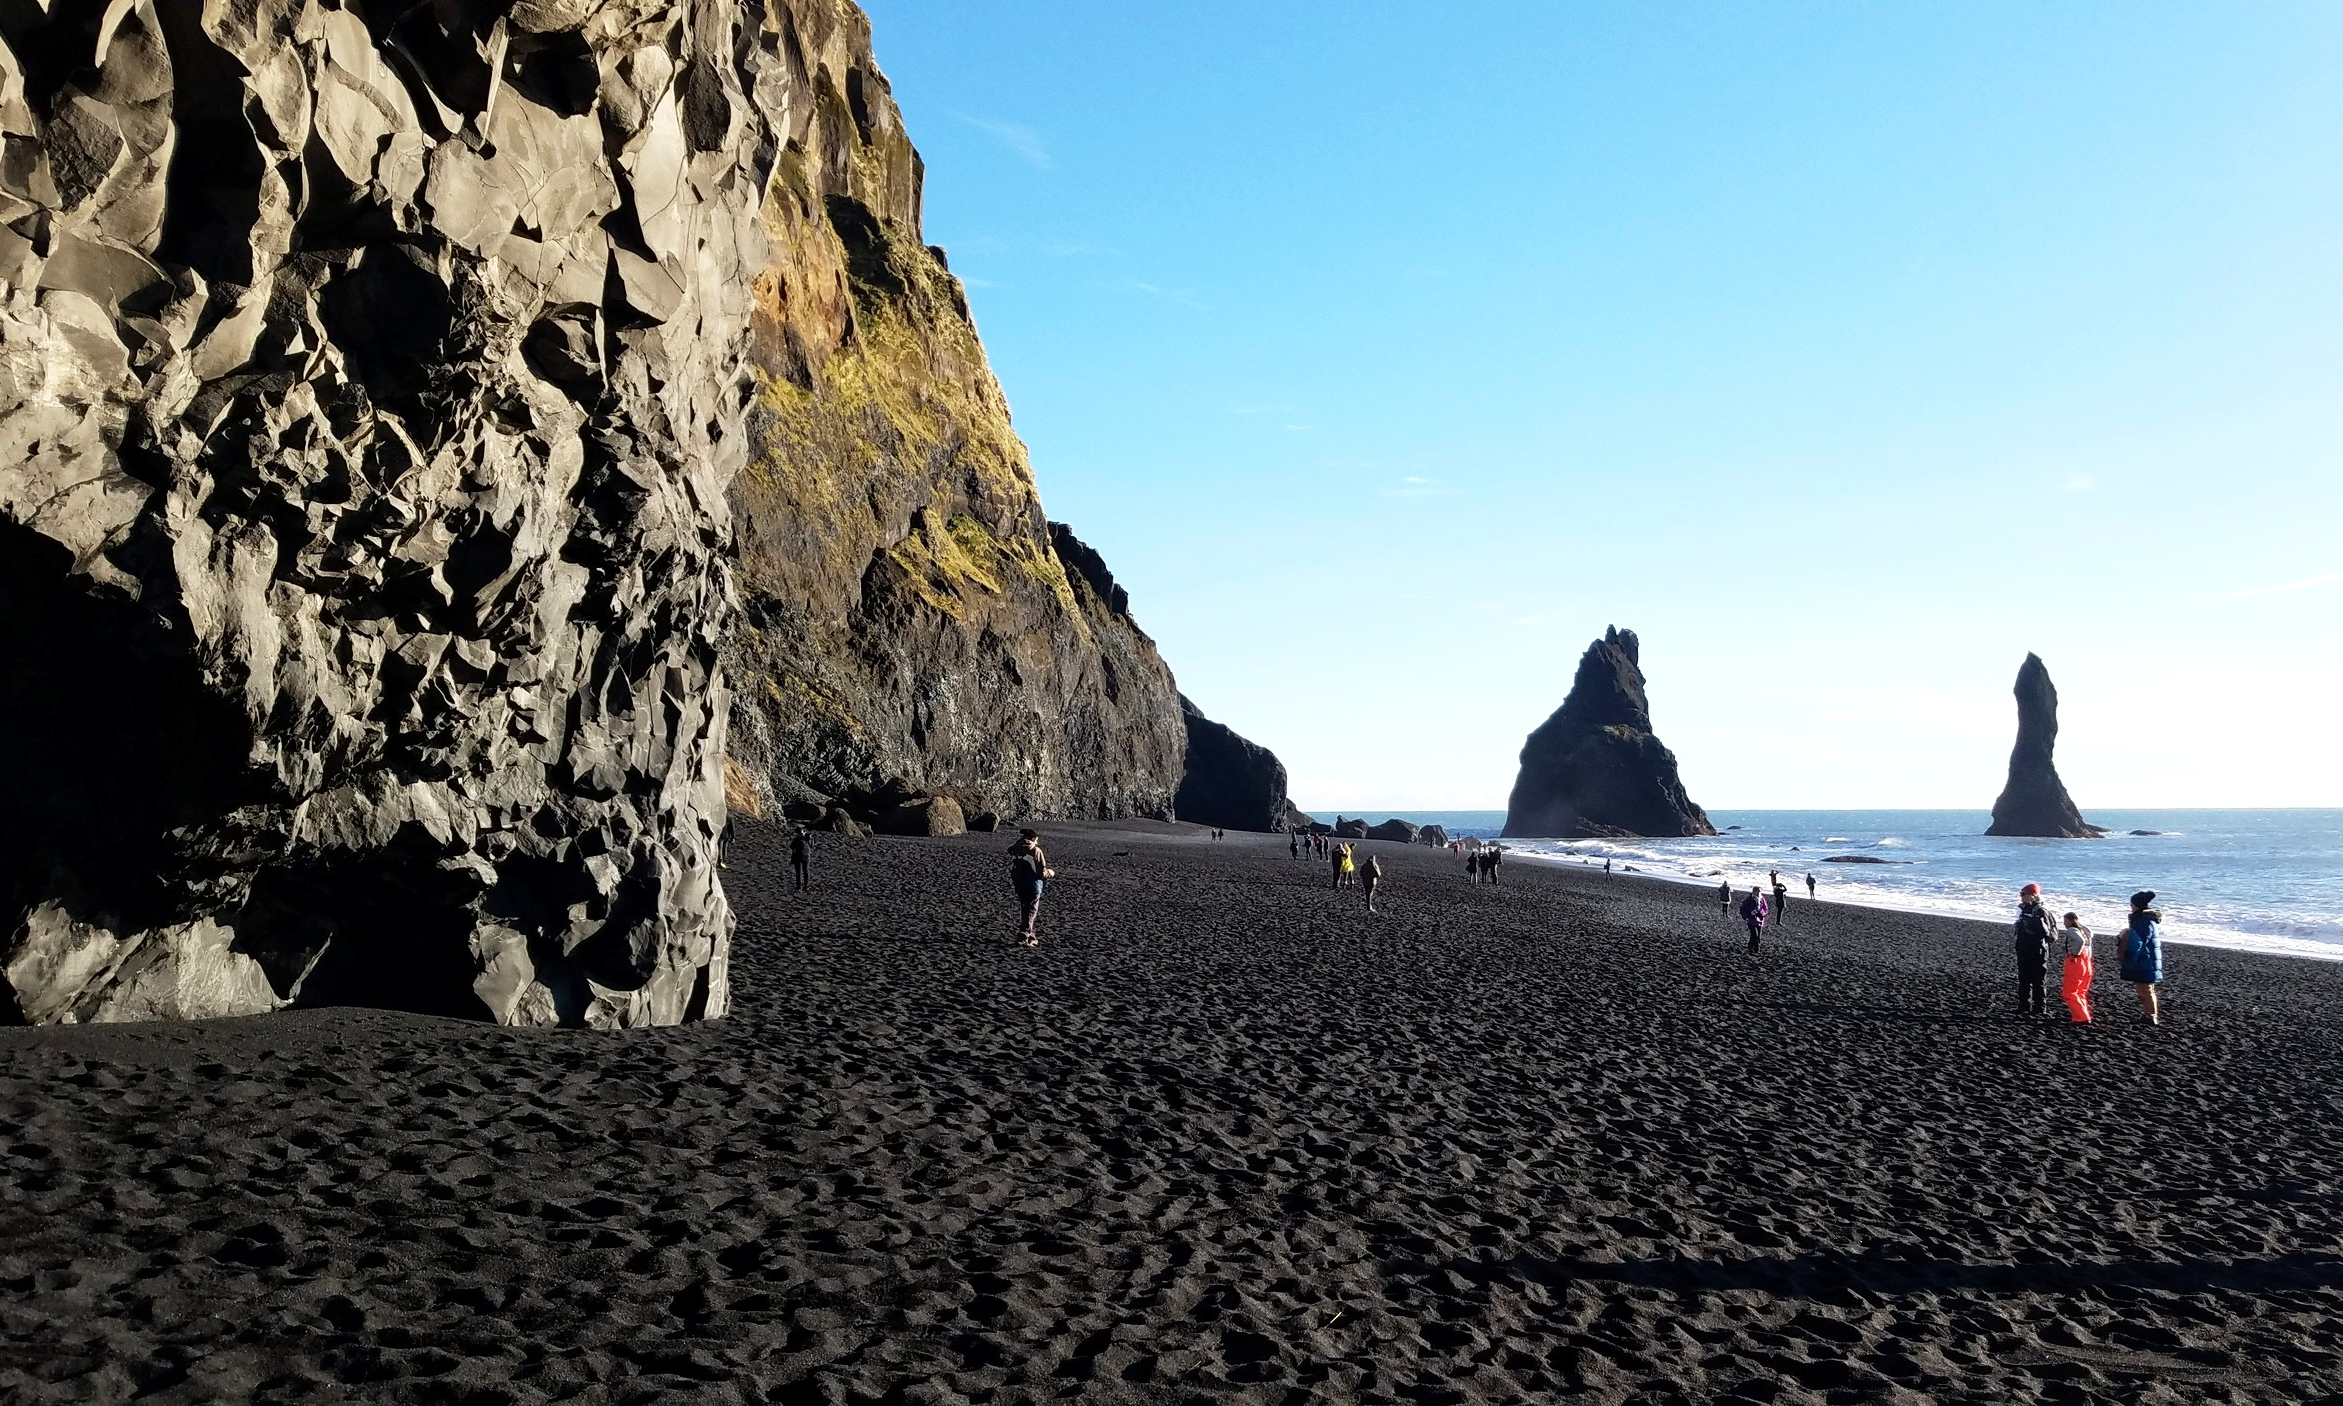 The black sand at Reynisfjara Beach   originated from the basalt lava that covers much of the area